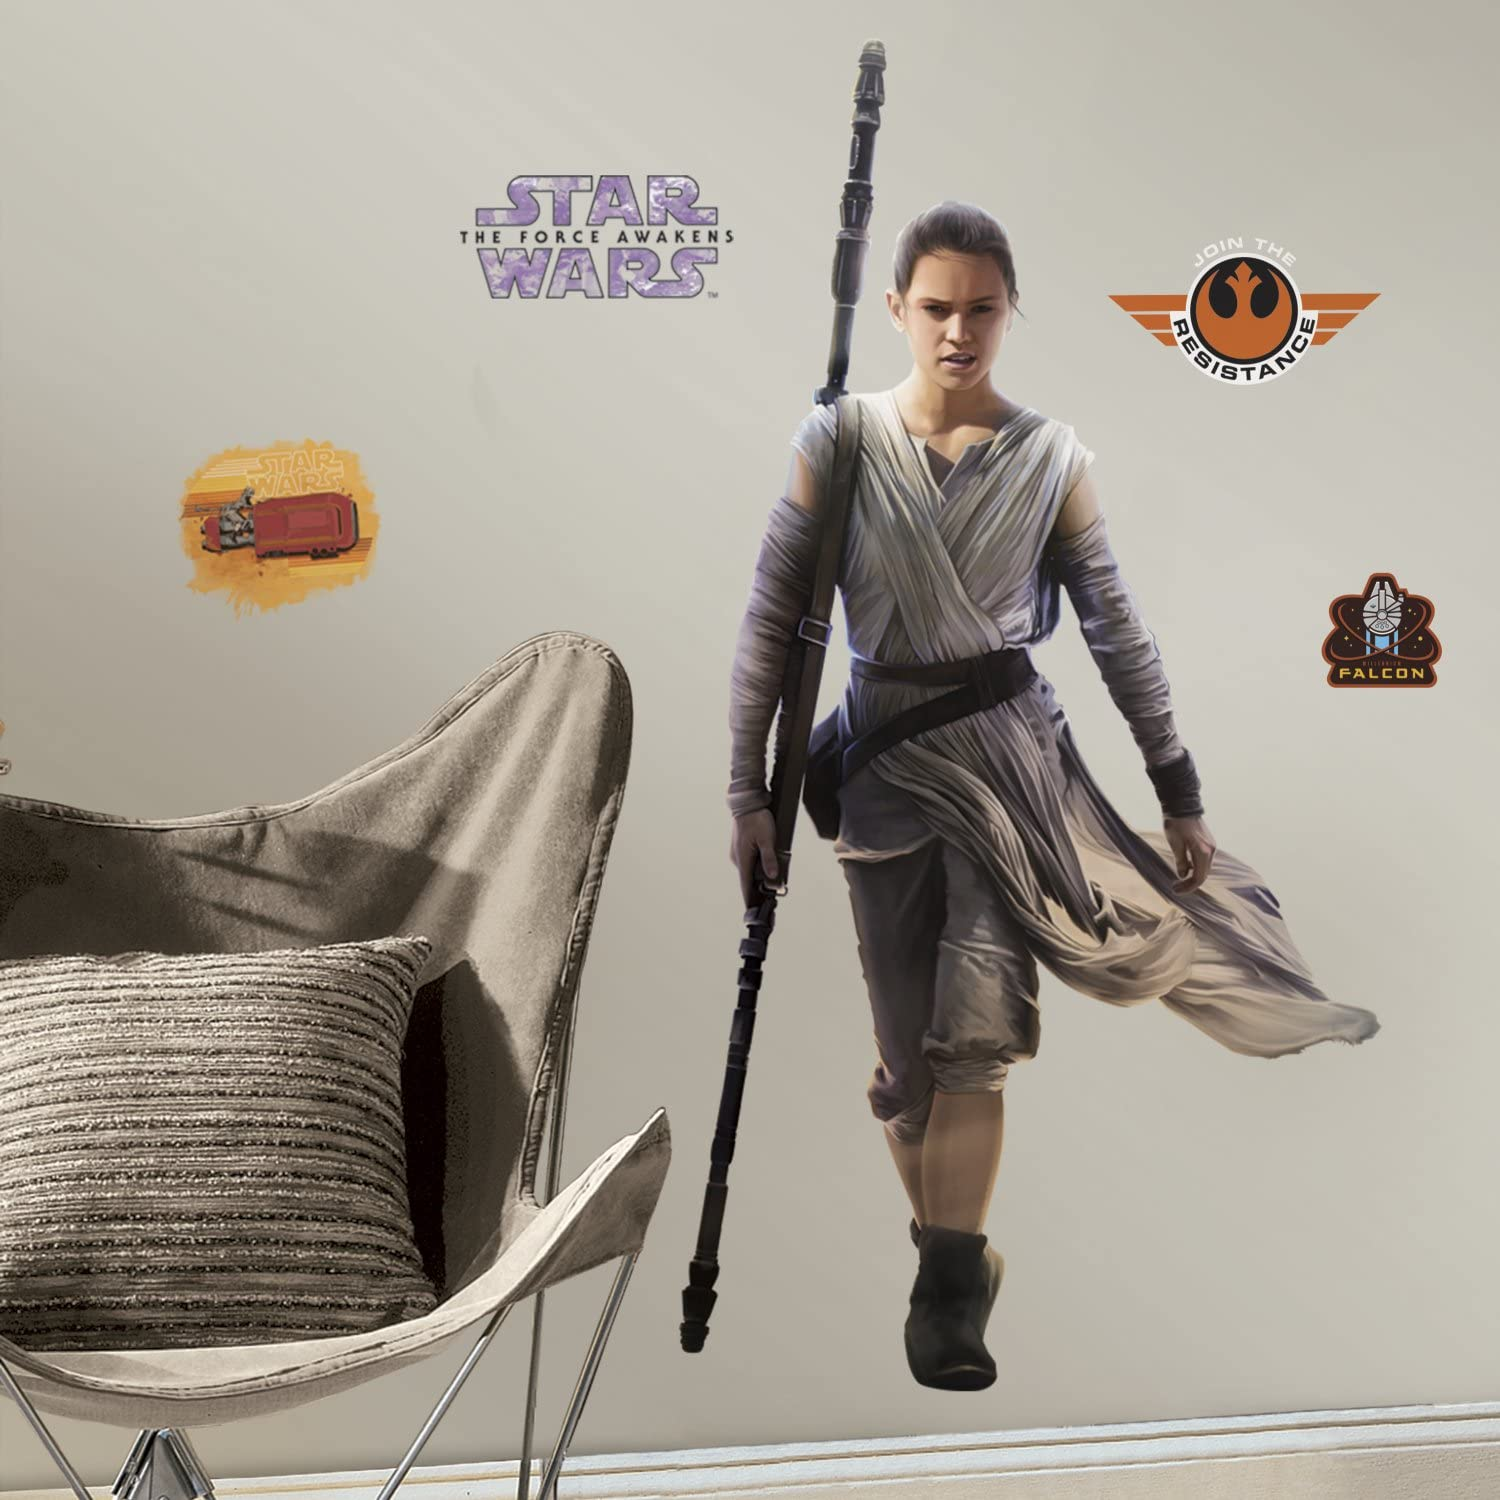 15 New STAR WARS THE FORCE AWAKENS WALL DECALS Rey Kylo Ren Stickers Room Decor